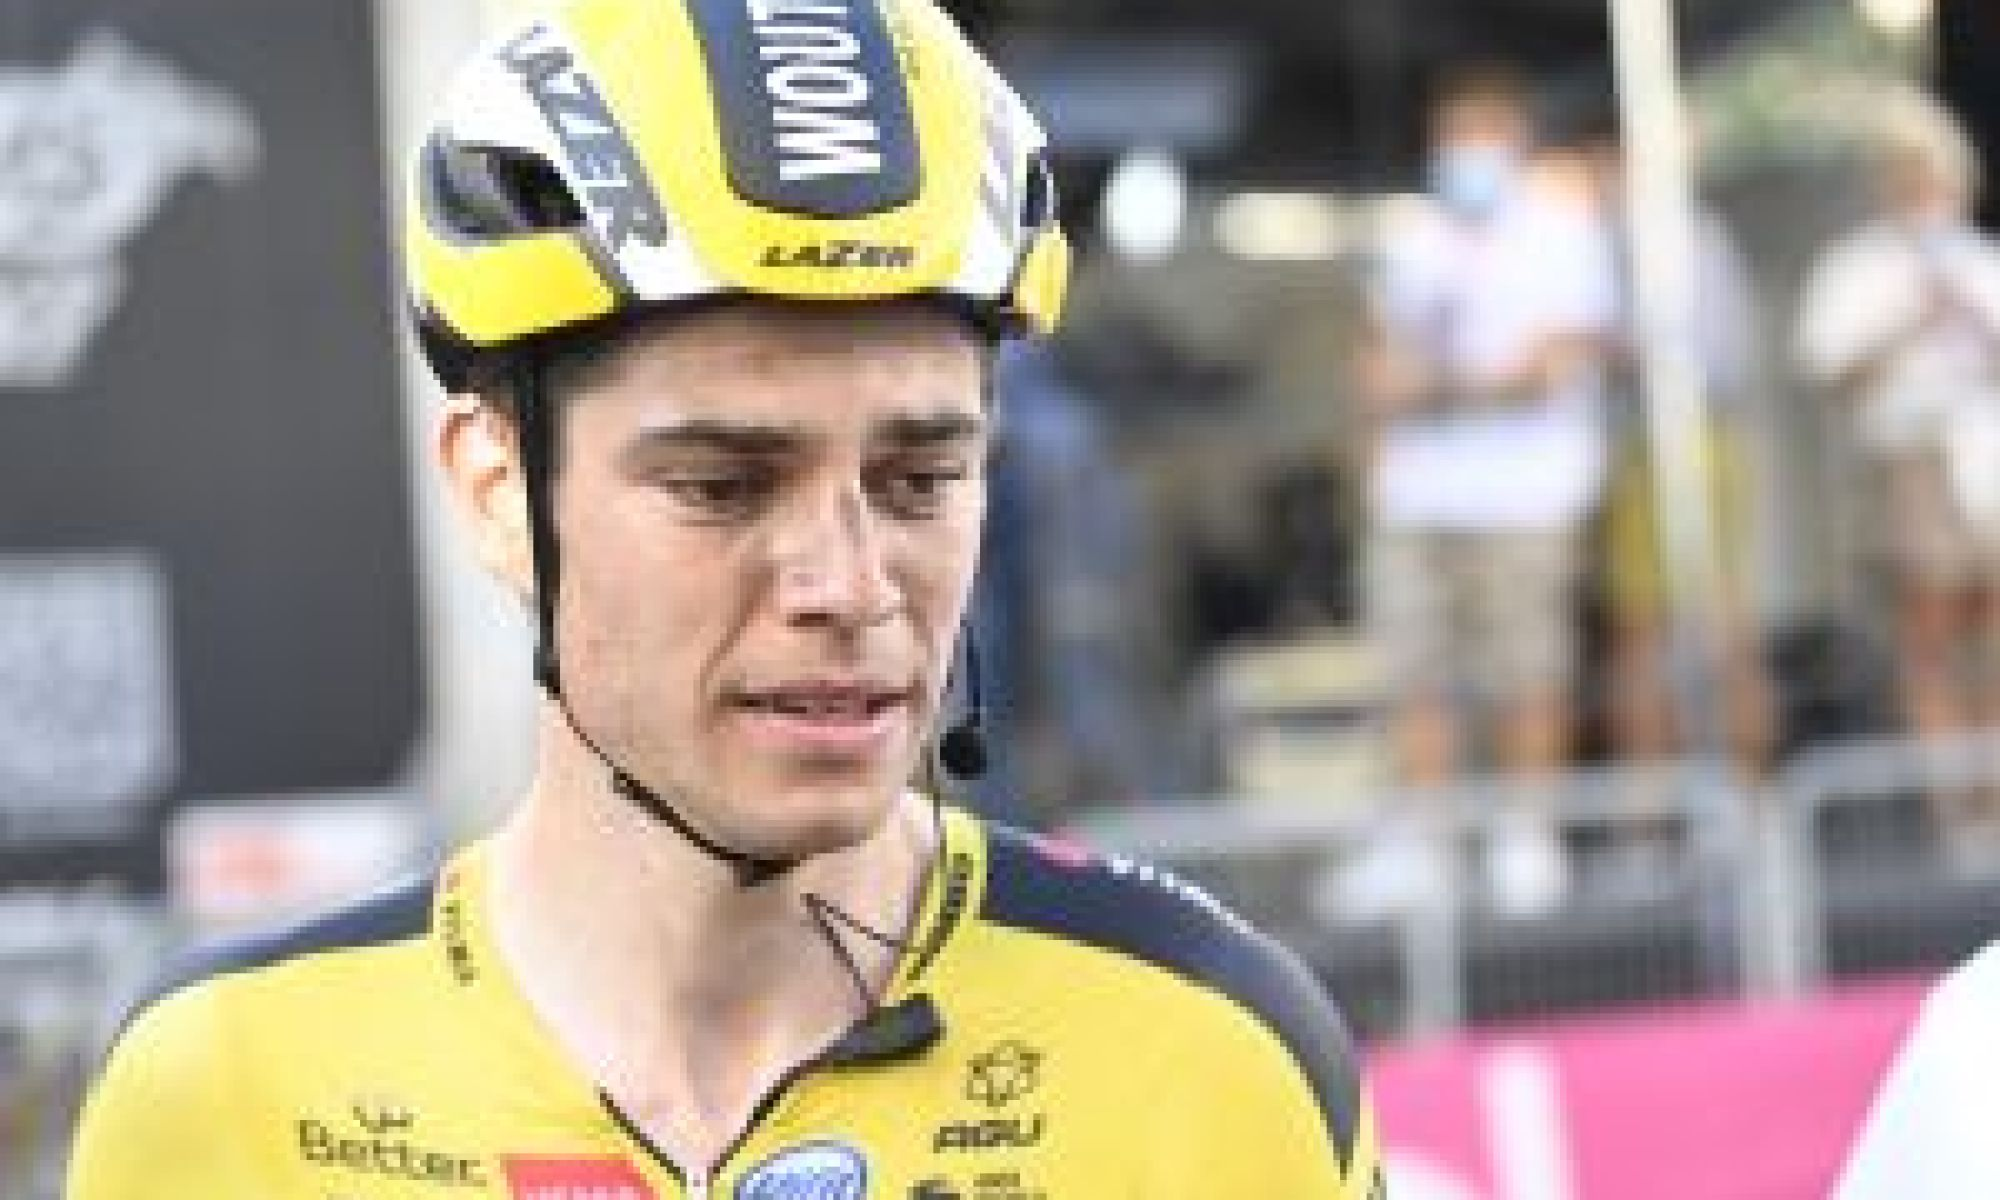 <div>Wout van Aert: 'Dylan Groenewegen made a big mistake but it was painful to see the reaction to him'</div>